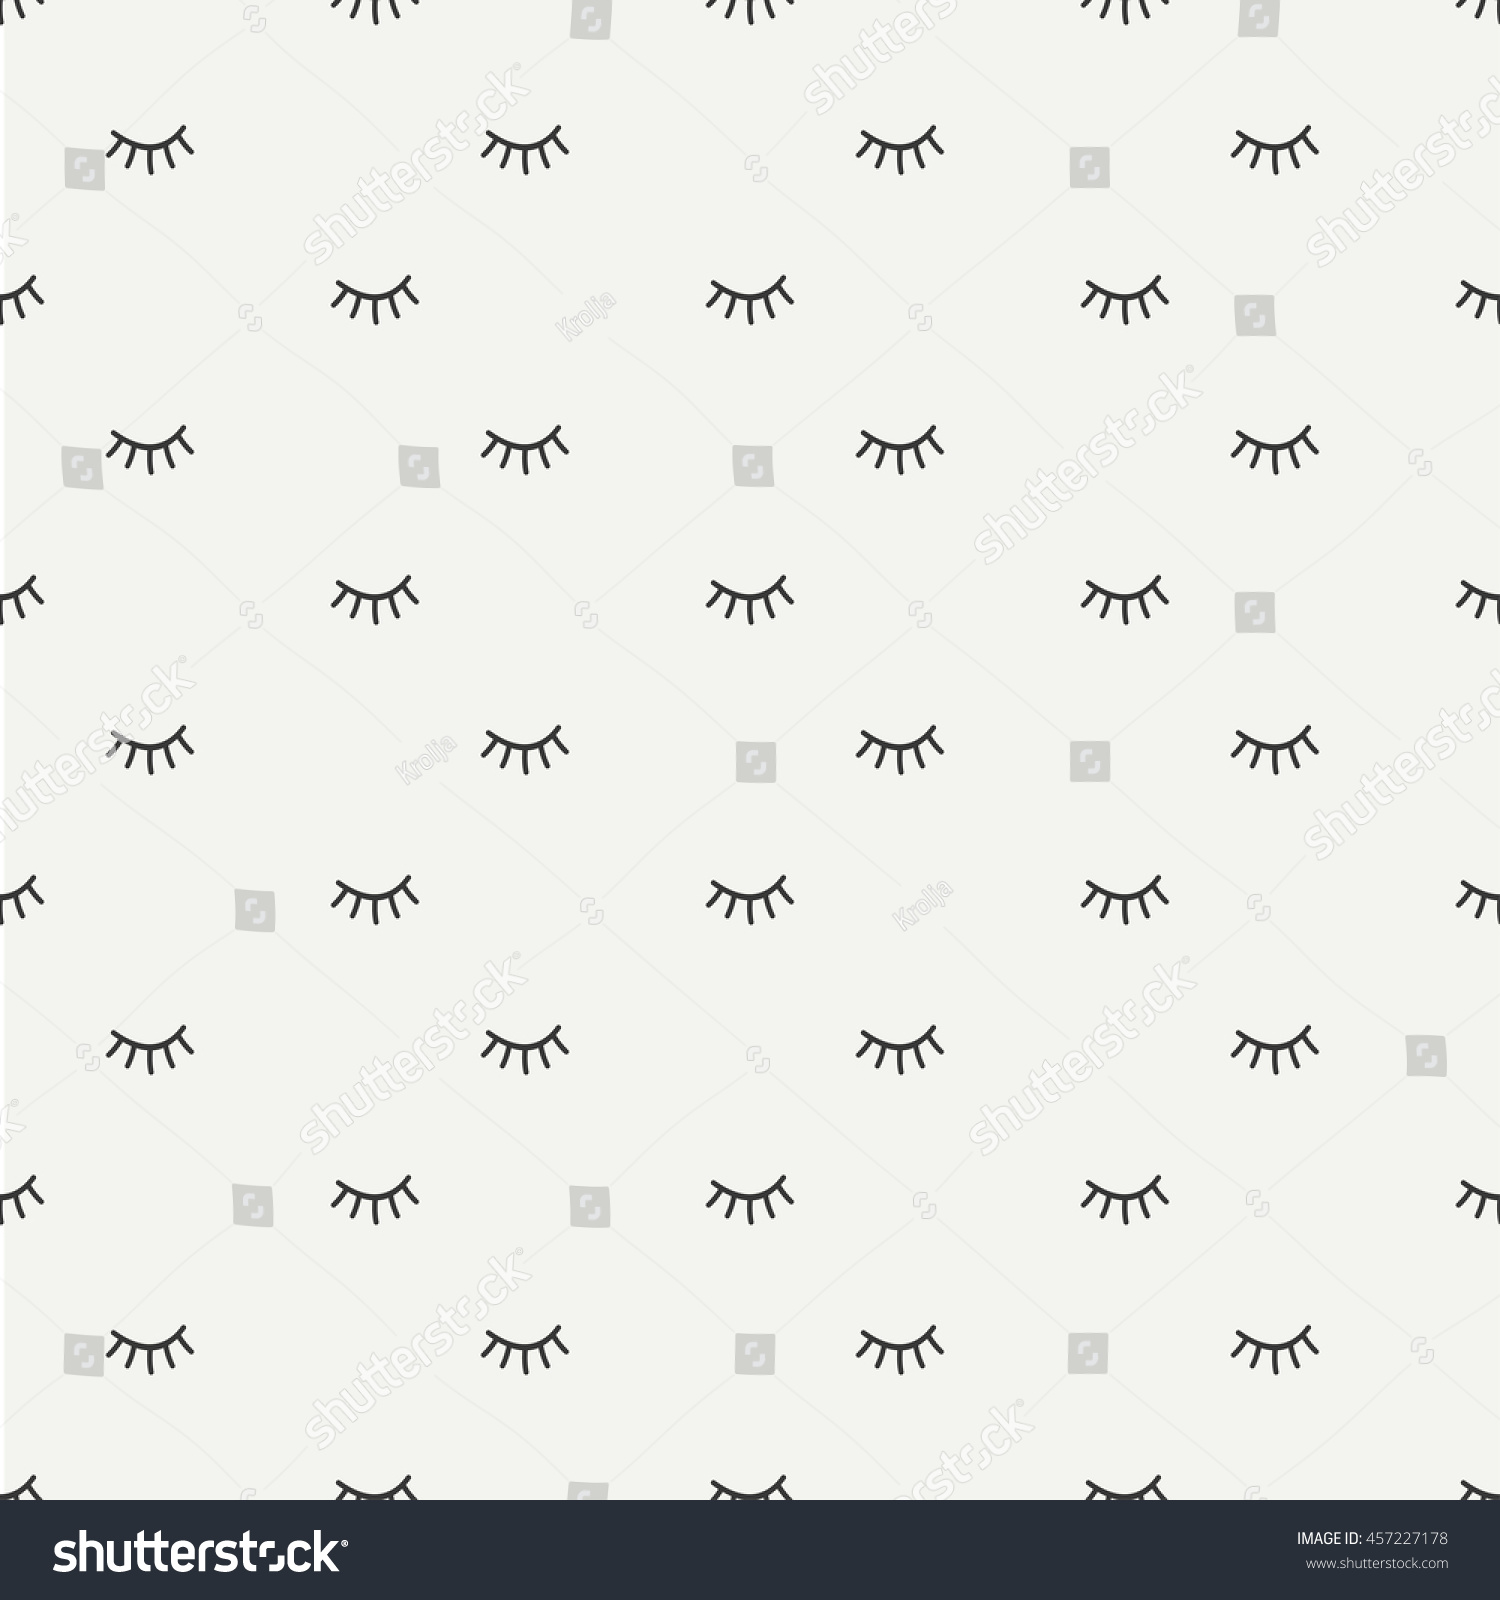 stock vector hand drawn seamless pattern with close eyes wrapping paper vector background casual texture 457227178 hand drawn seamless pattern close eyes stock vector (royalty free